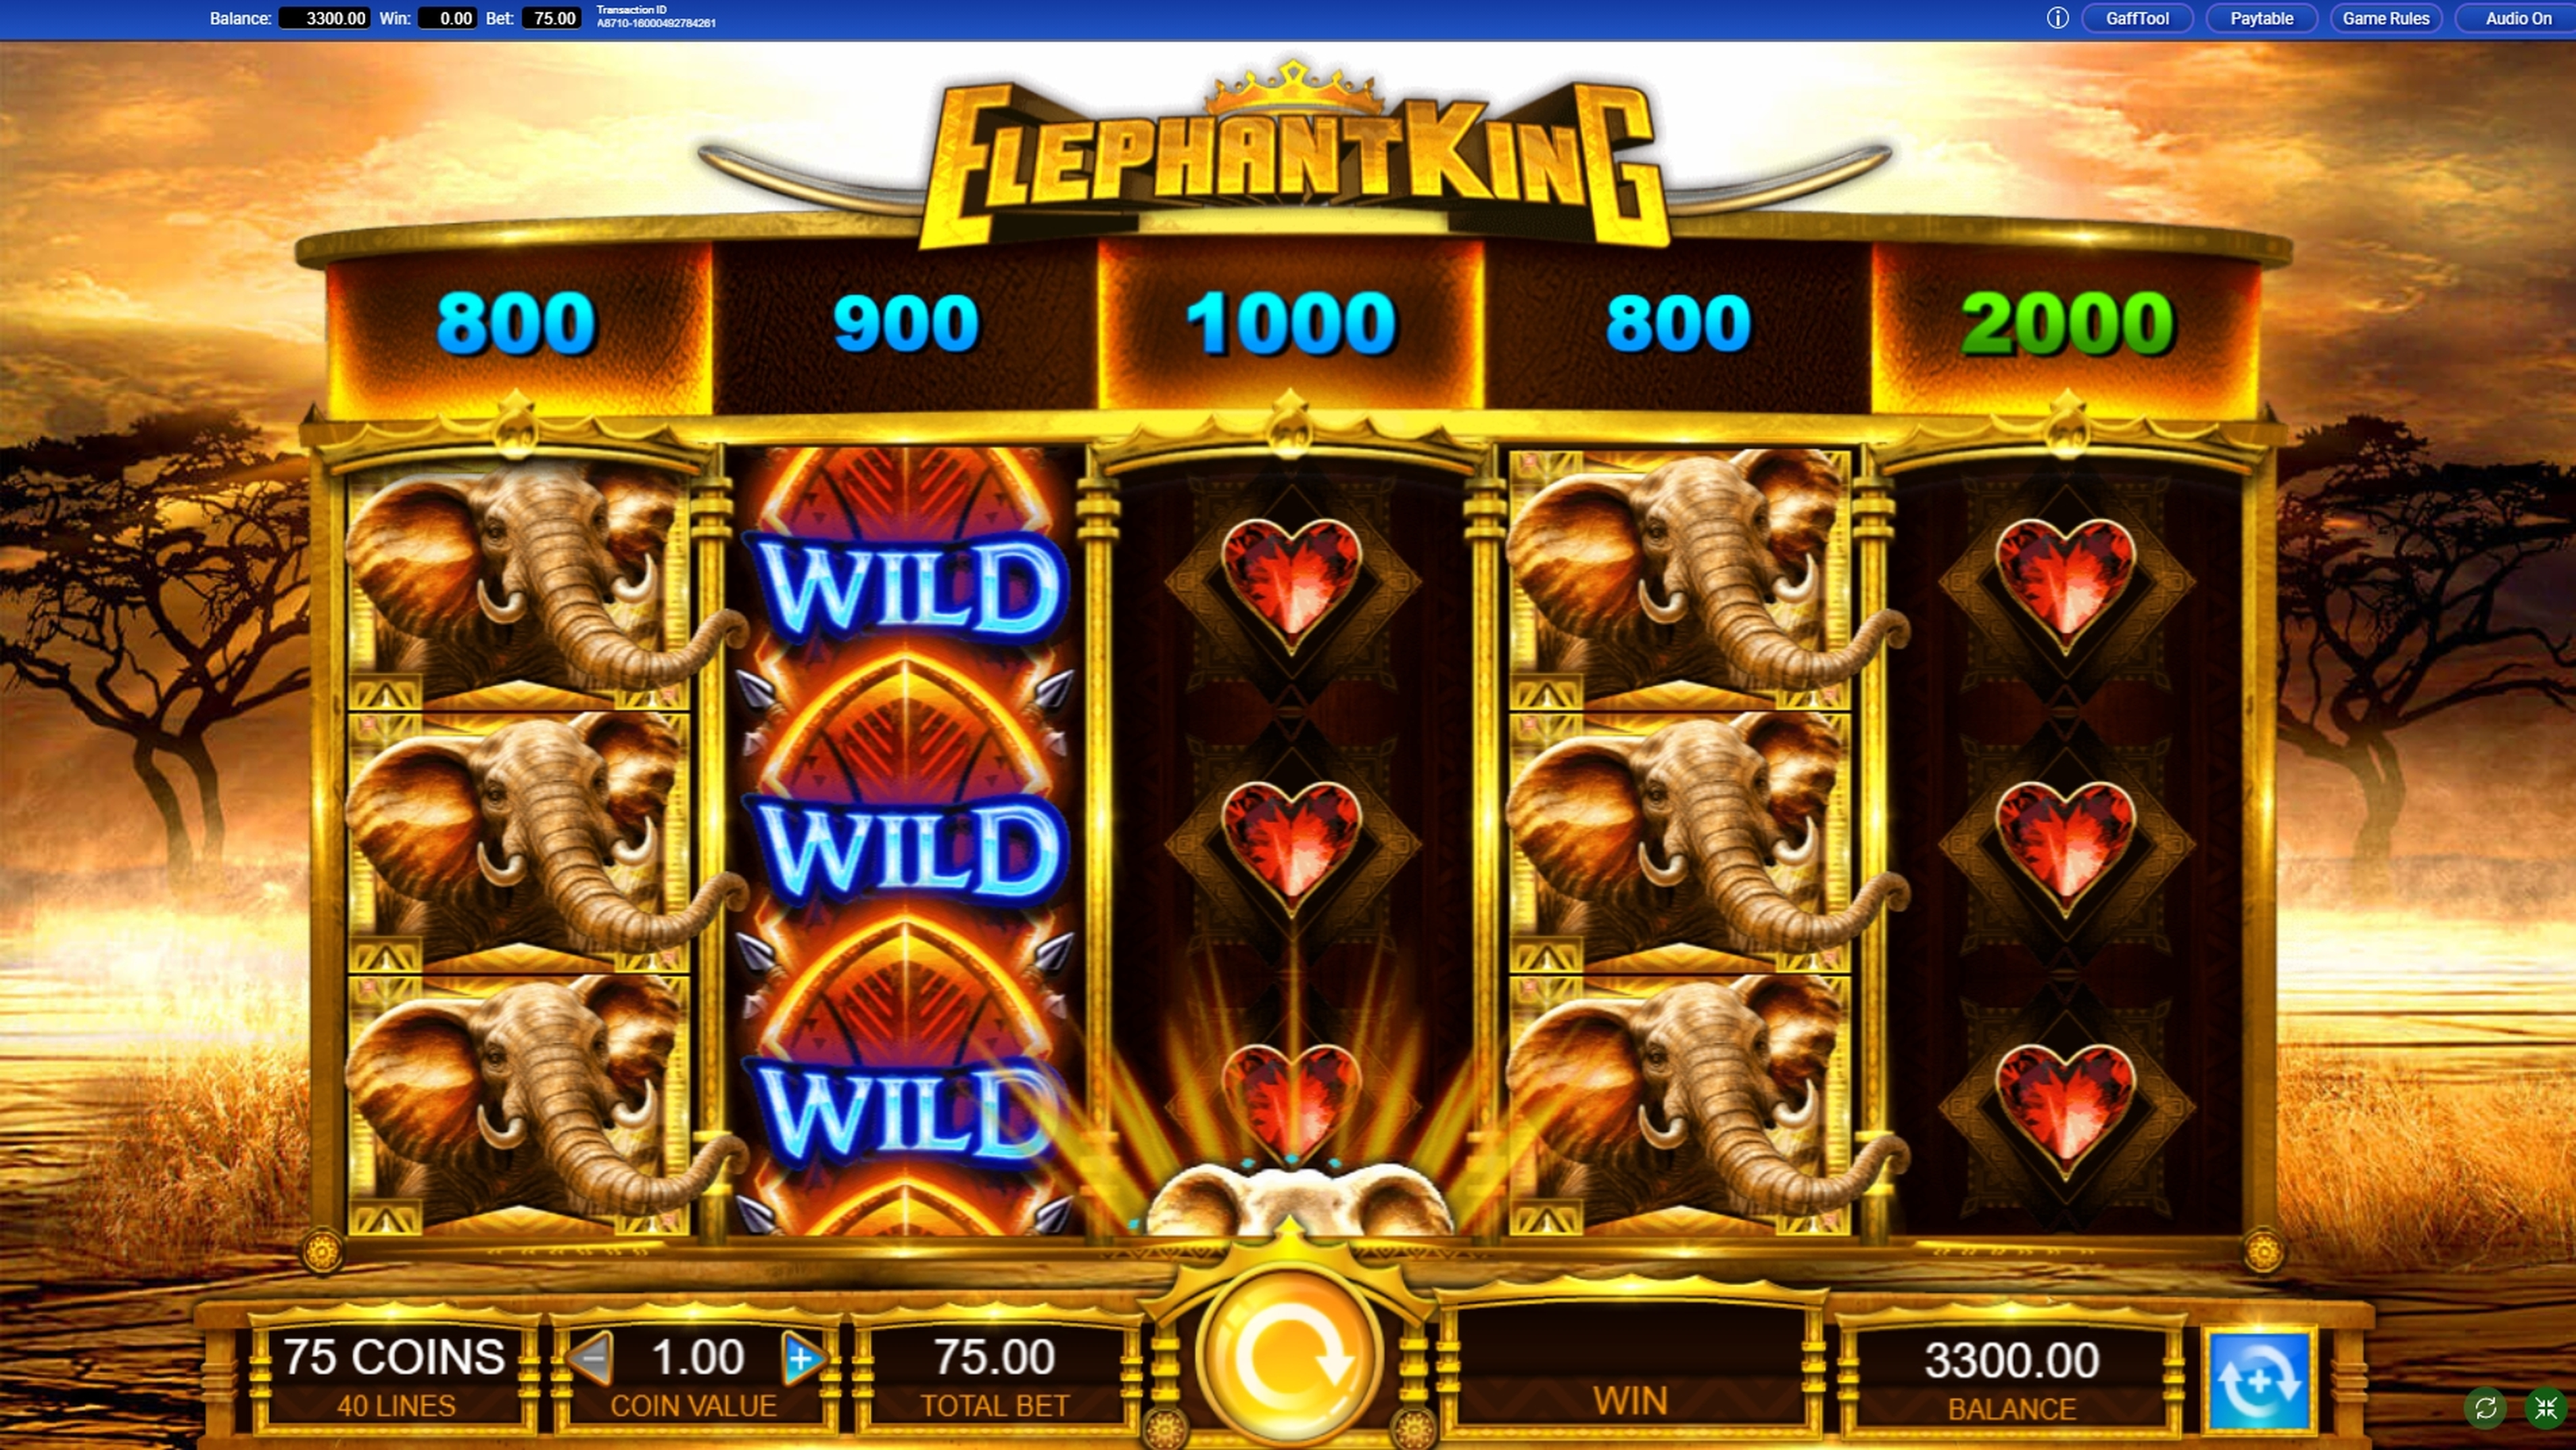 Reels in Elephant King Slot Game by IGT